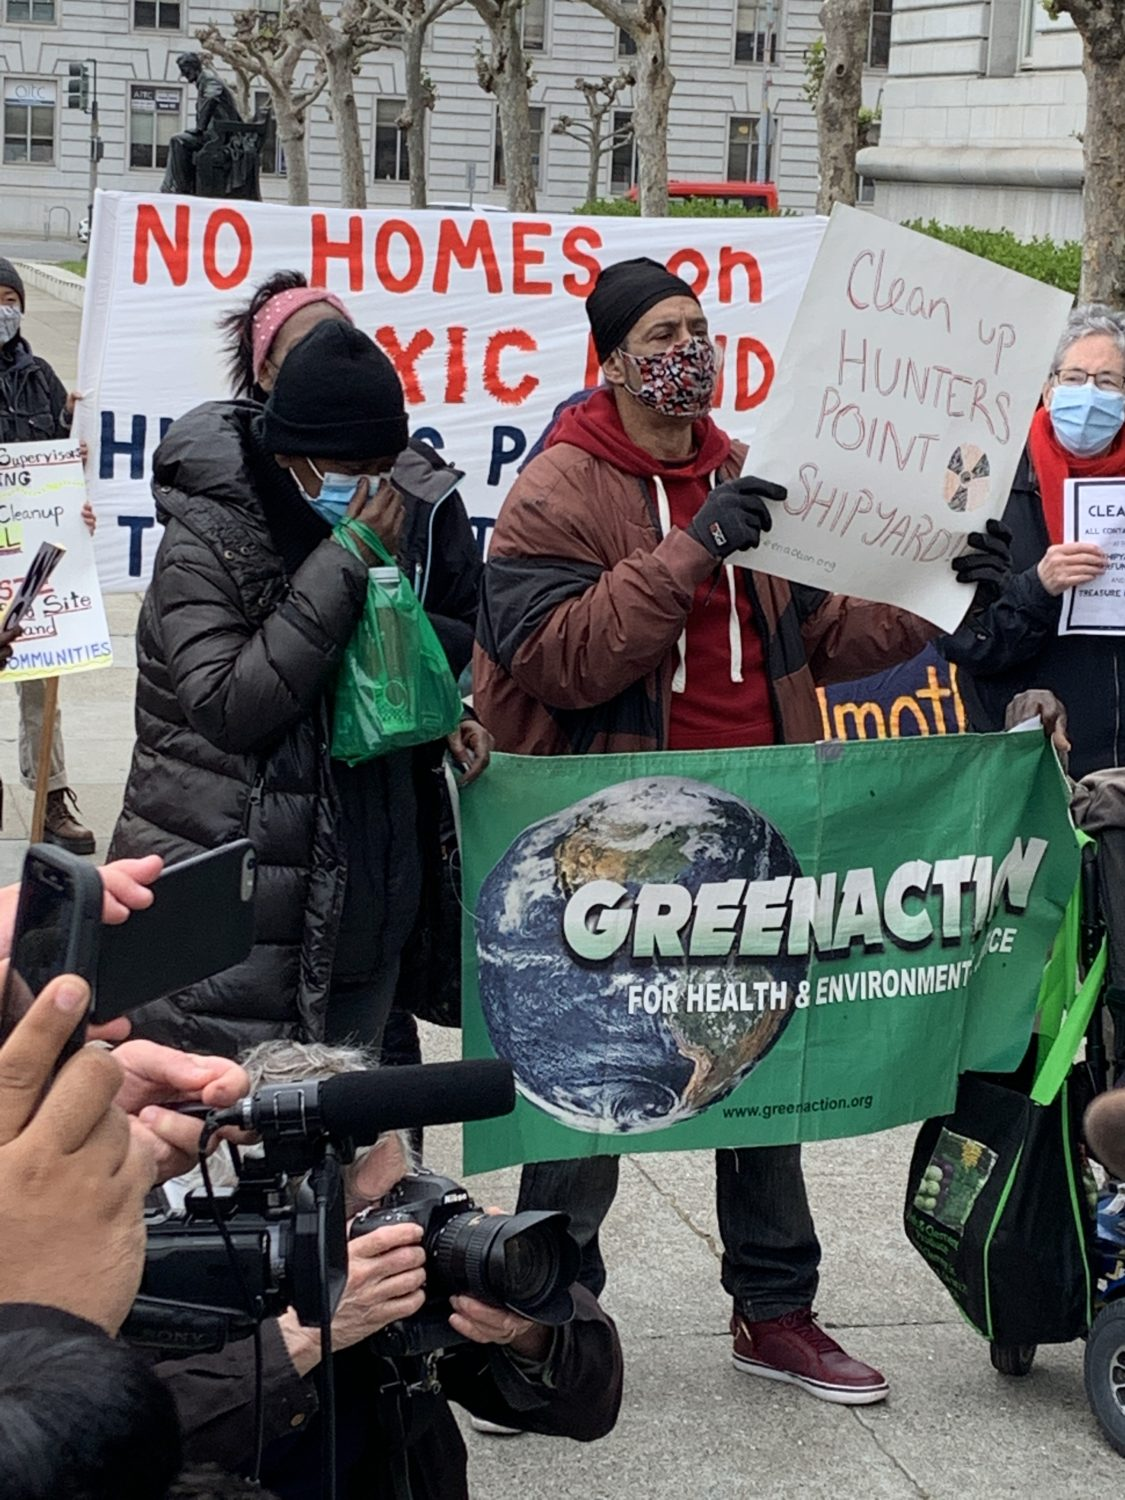 Hunters-Point-Mothers-Fathers-Committee-speak-Earth-Day-Rally-City-Hall-042221, Earth Day 2021 in San Francisco!, Local News & Views